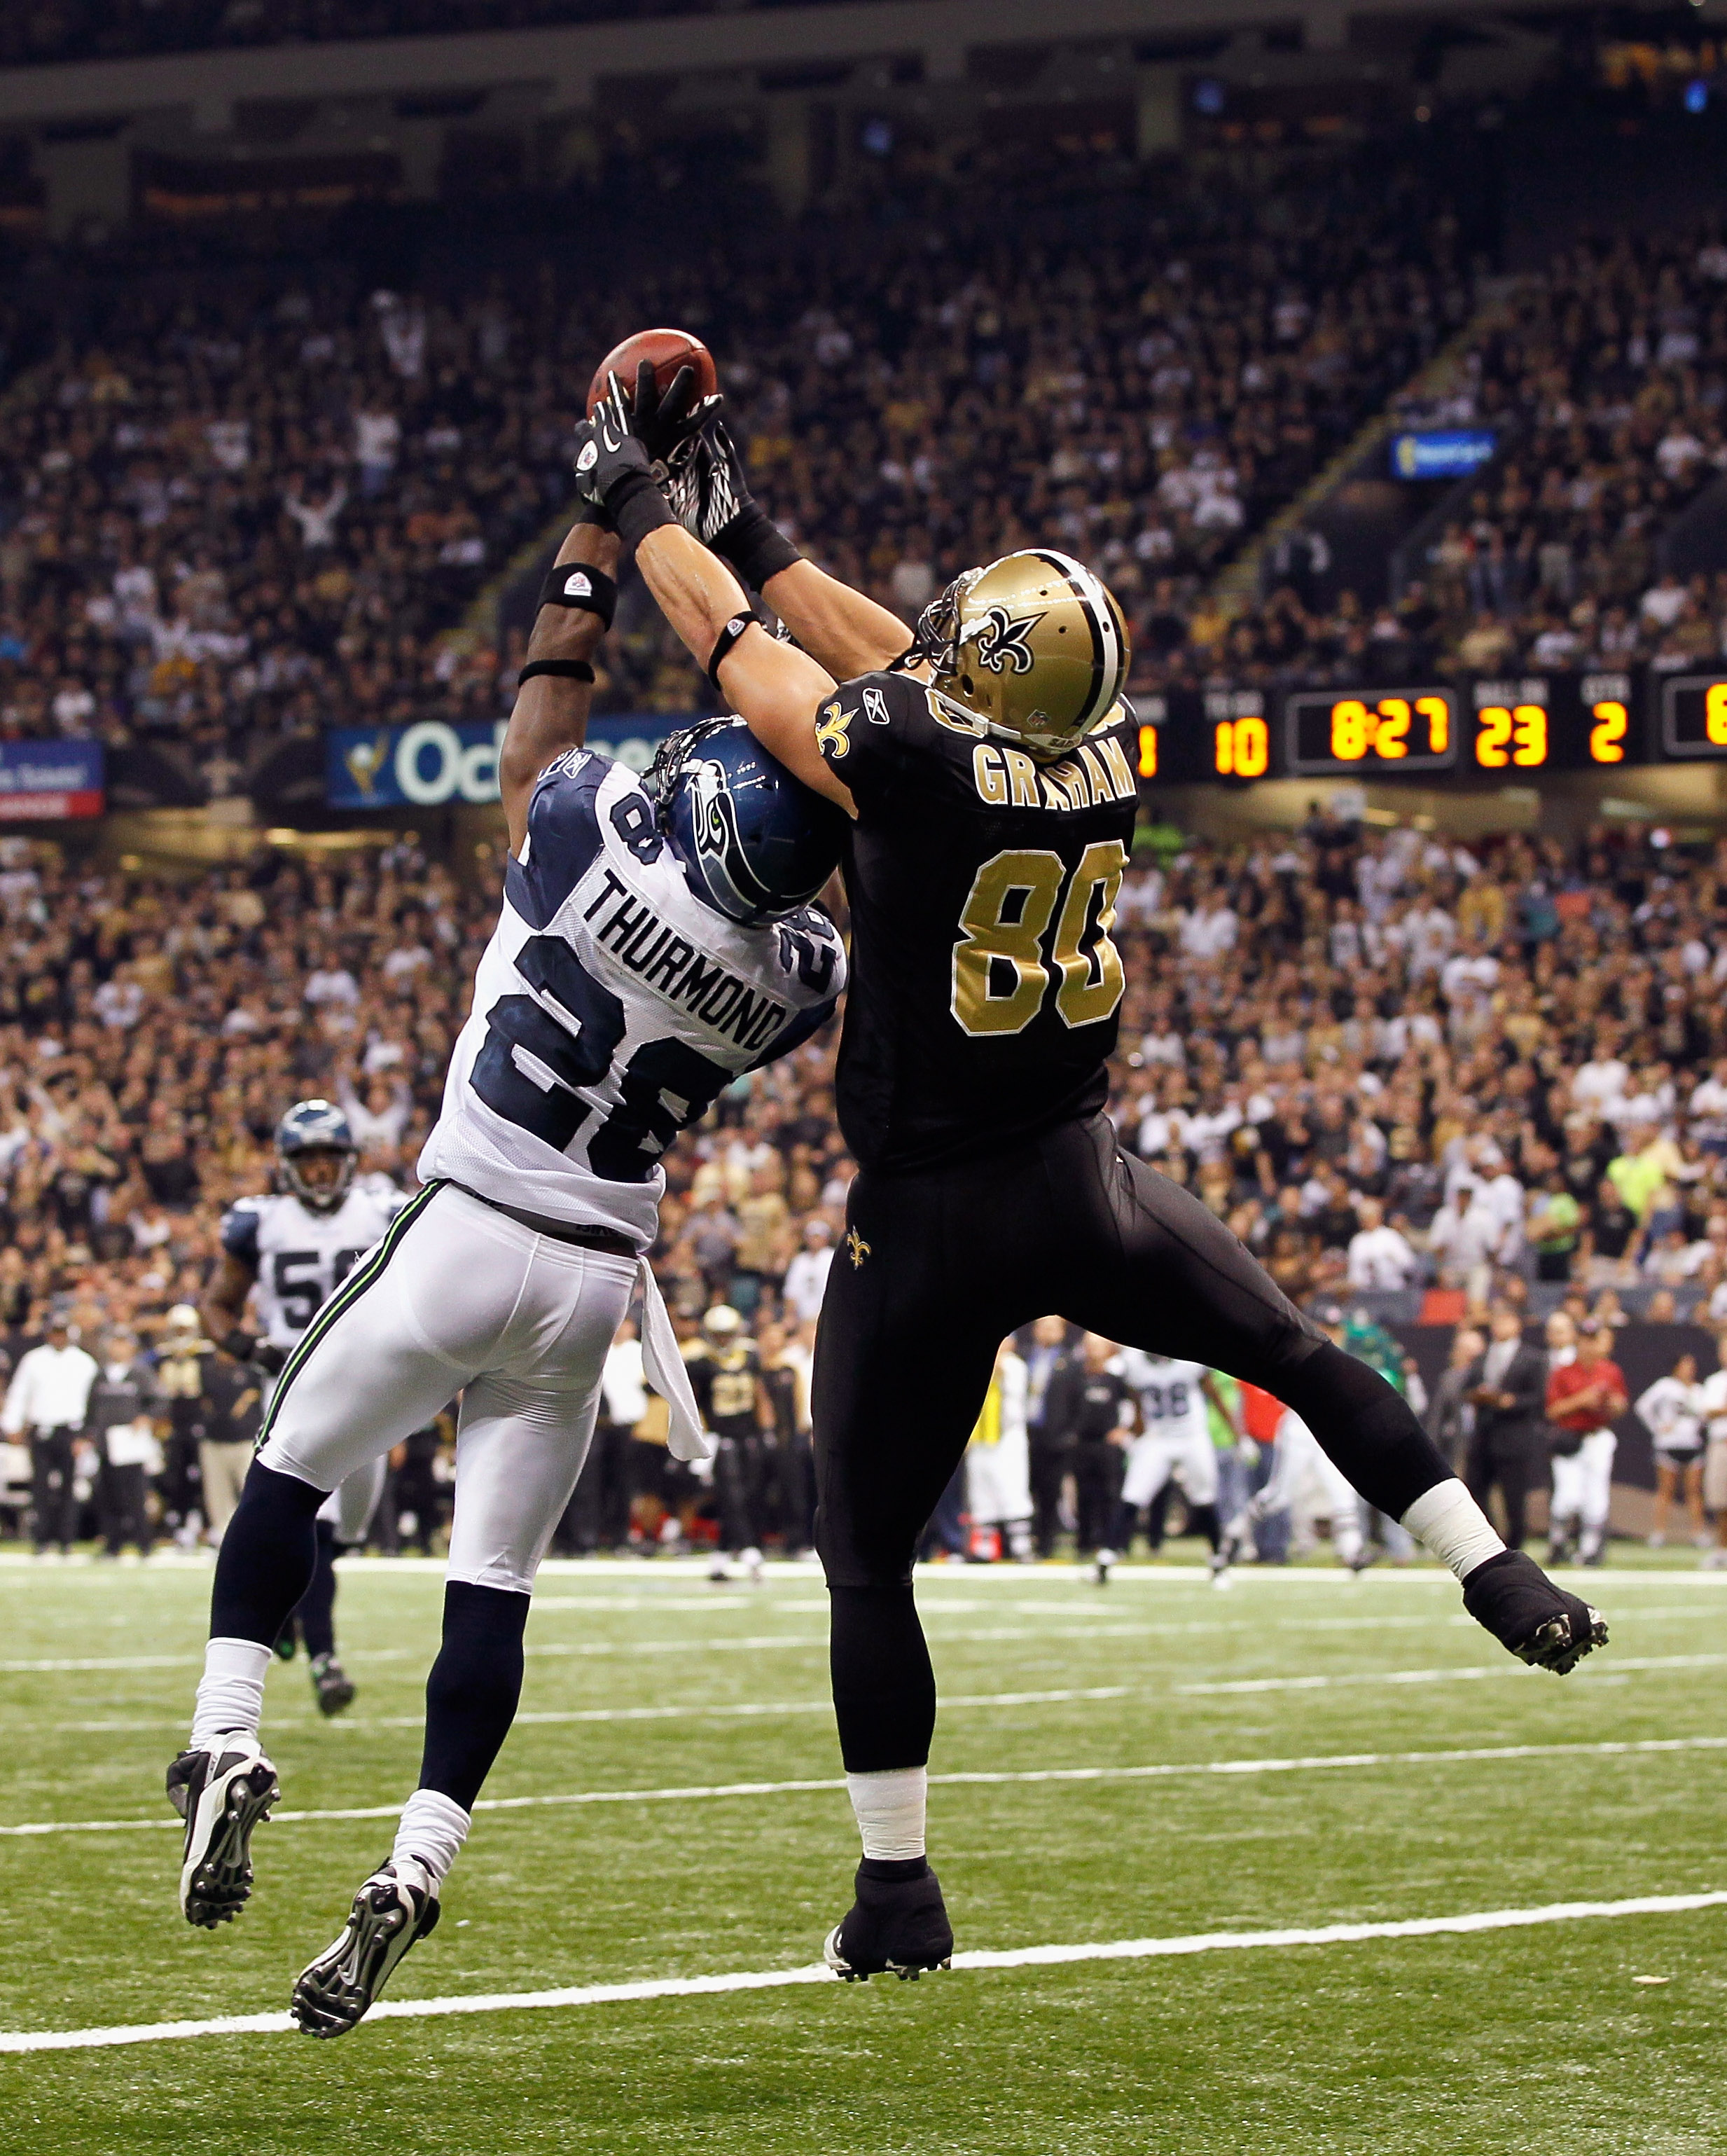 NEW ORLEANS - NOVEMBER 21:  Walter Thurmond #28 of the Seattle Seahawks breaks up a touchdown reception intended for Jimmy Graham #80 of the New Orleans Saints at Louisiana Superdome on November 21, 2010 in New Orleans, Louisiana.  (Photo by Kevin C. Cox/